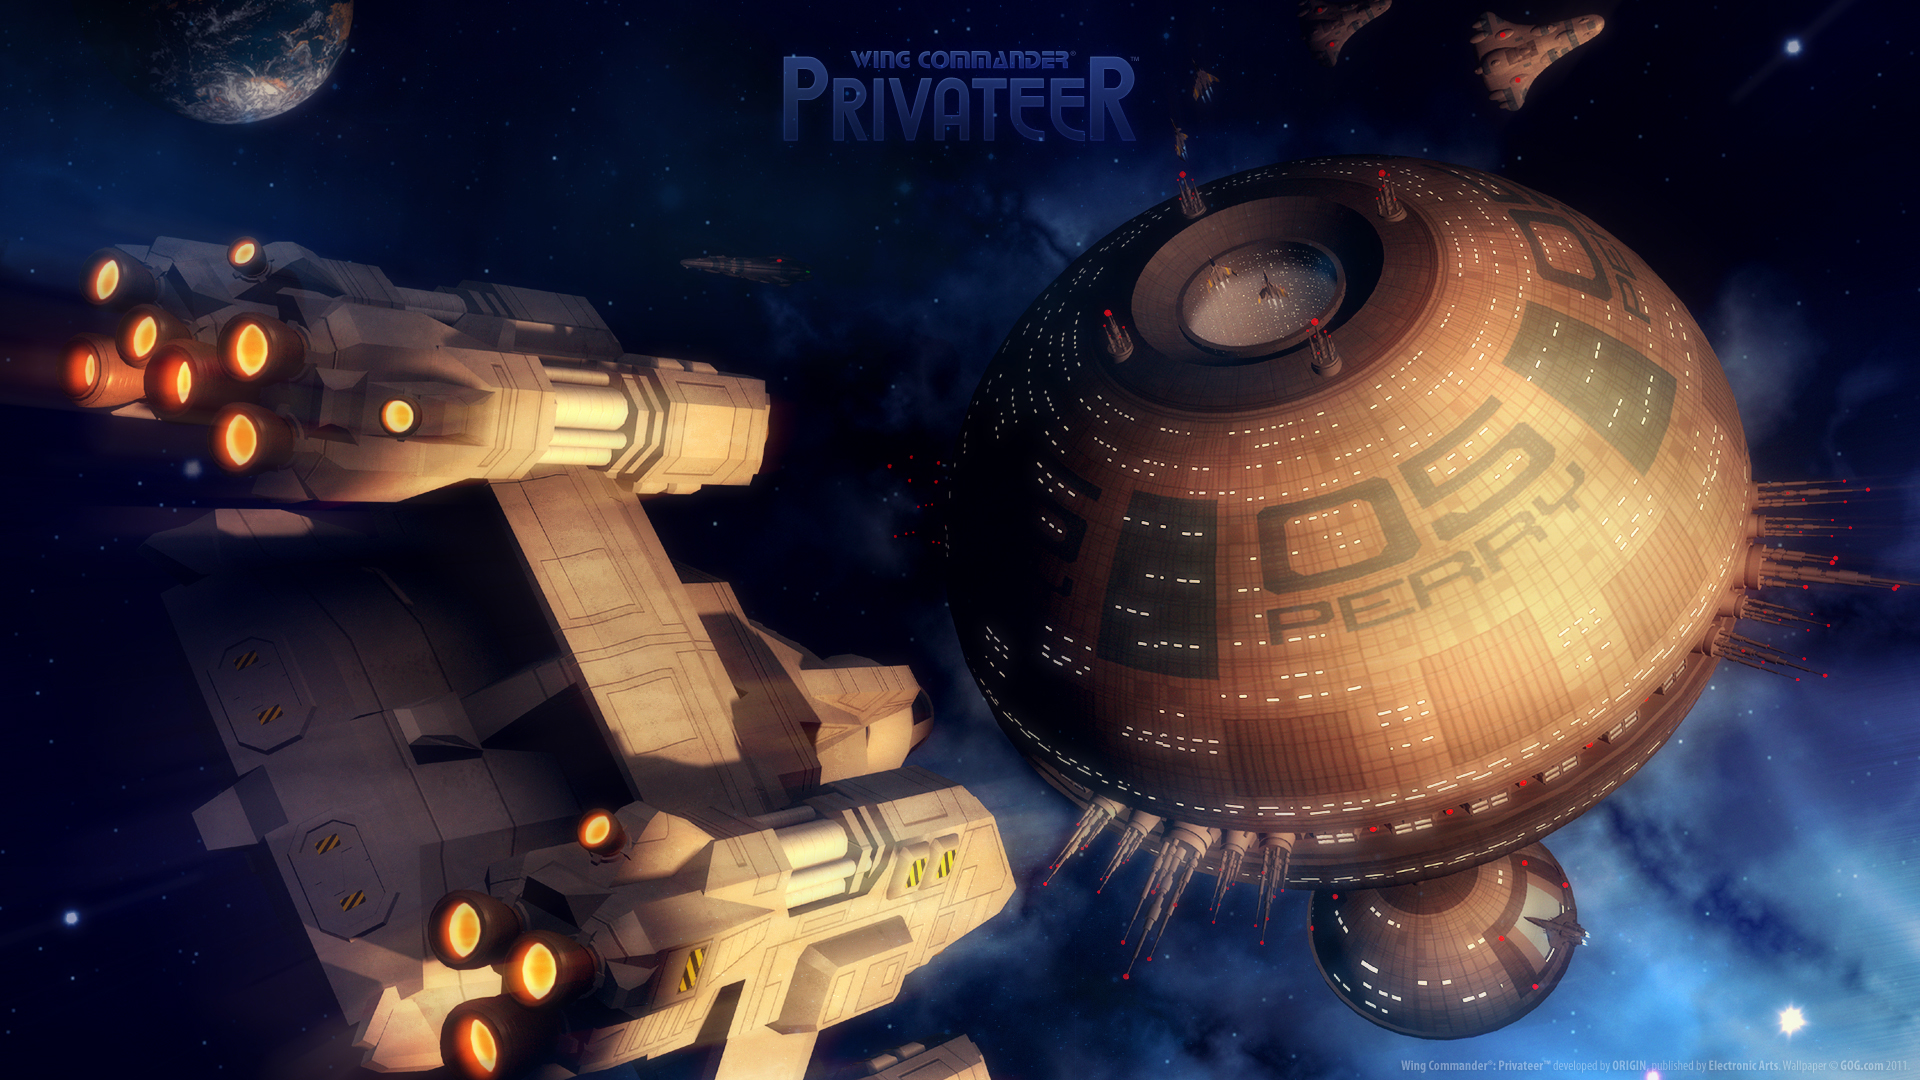 Wing Commander Privateer Hd Wallpaper Background Image